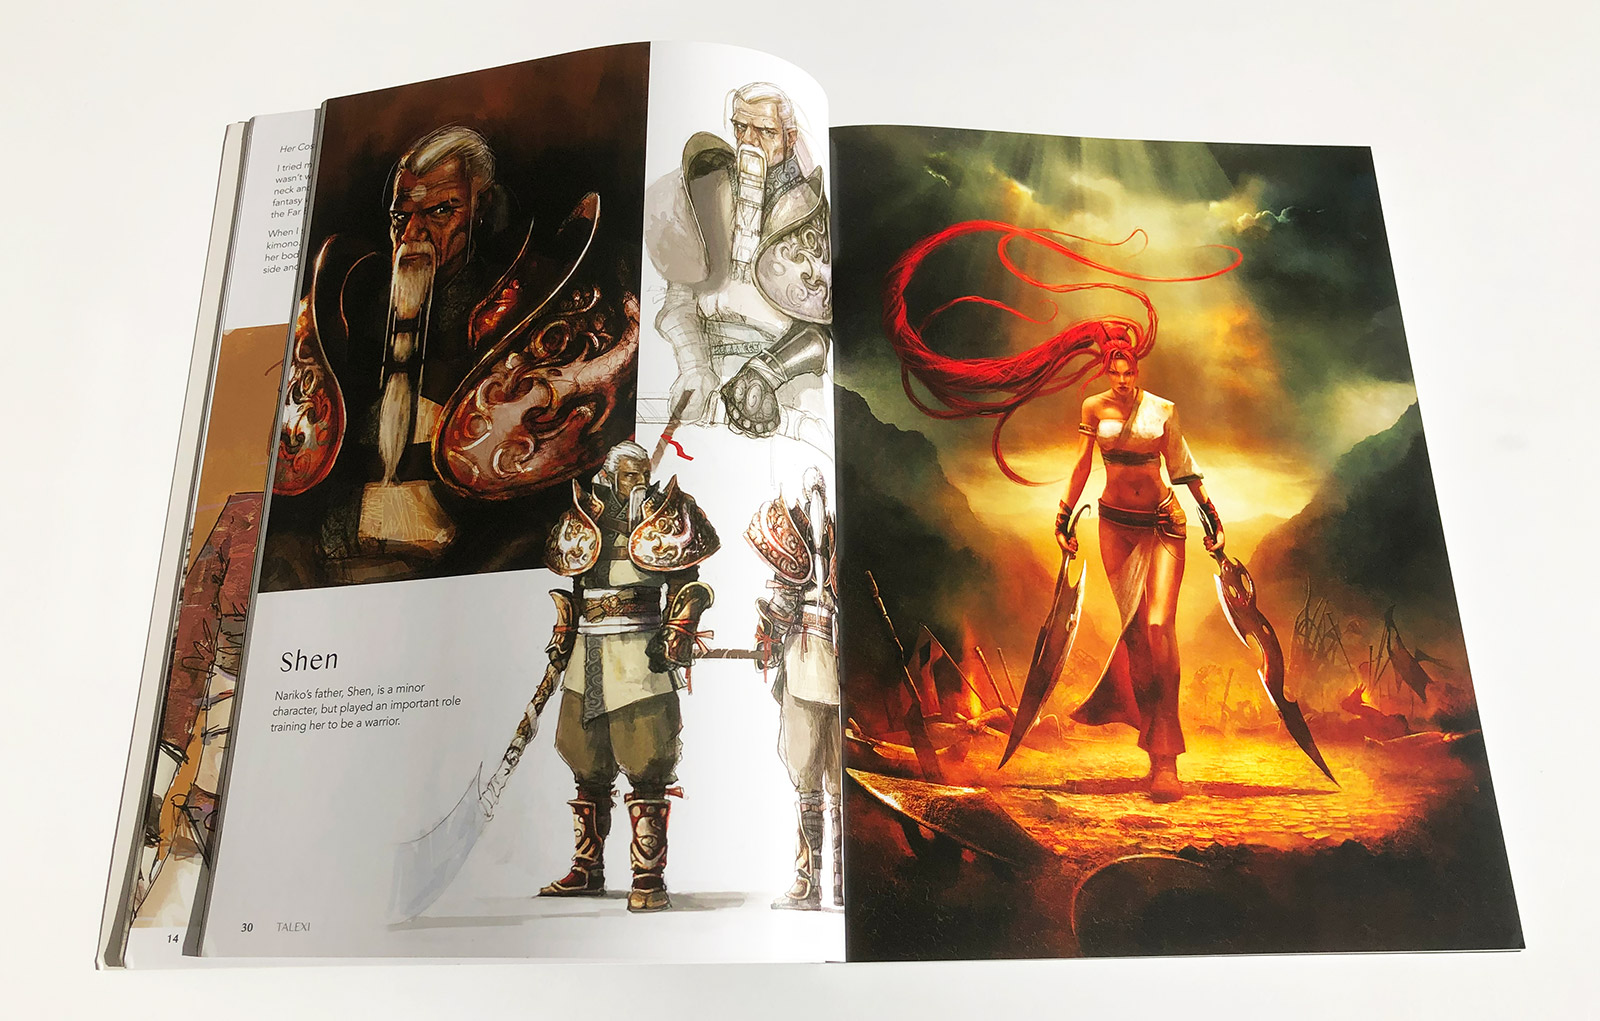 Talexi The Concept Art Of Alessandro Taini Book Review